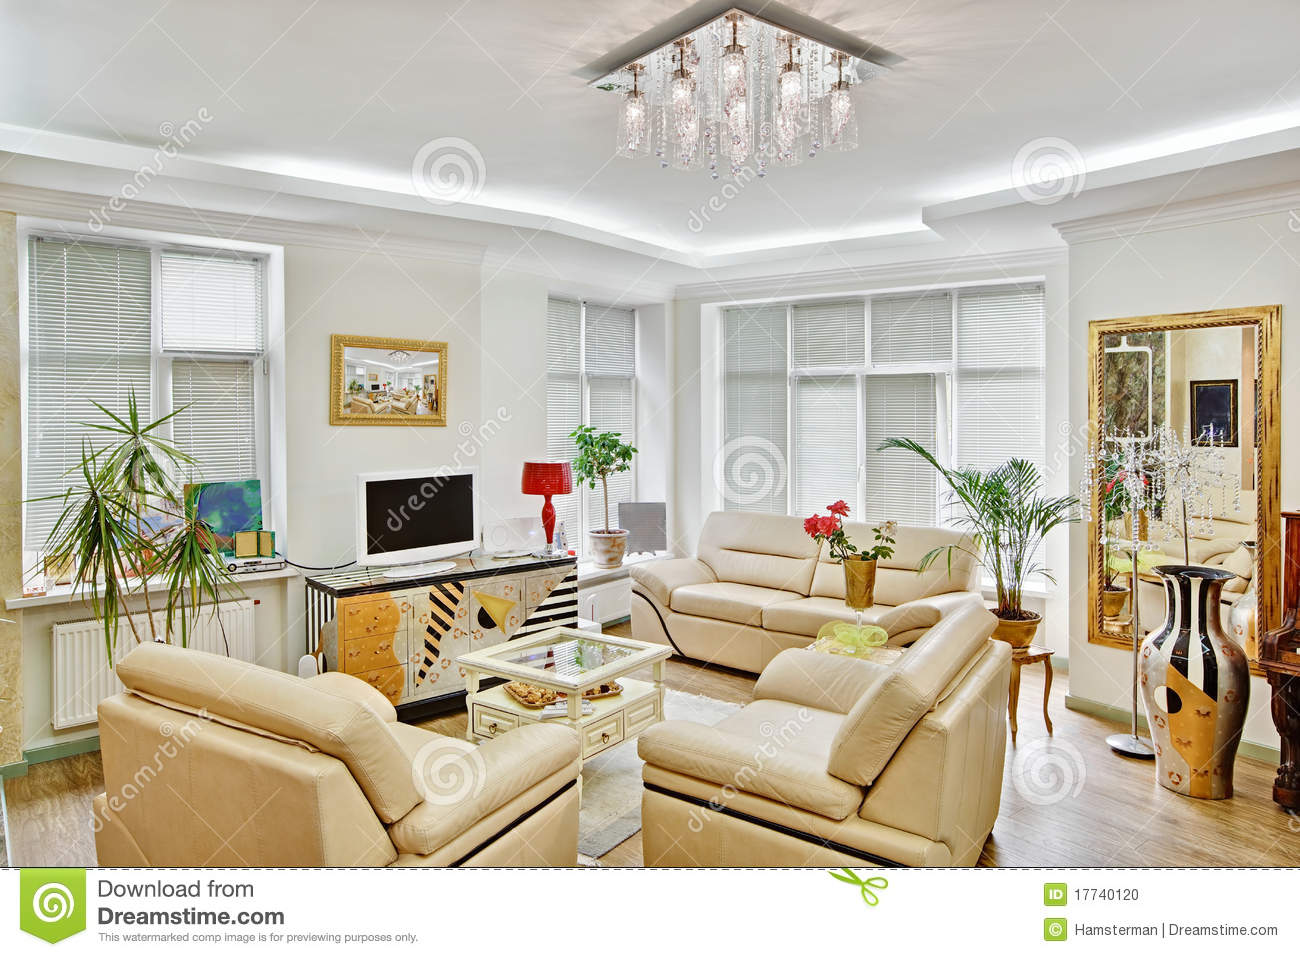 Modern art deco style drawing room interior stock photo for Style de salon moderne